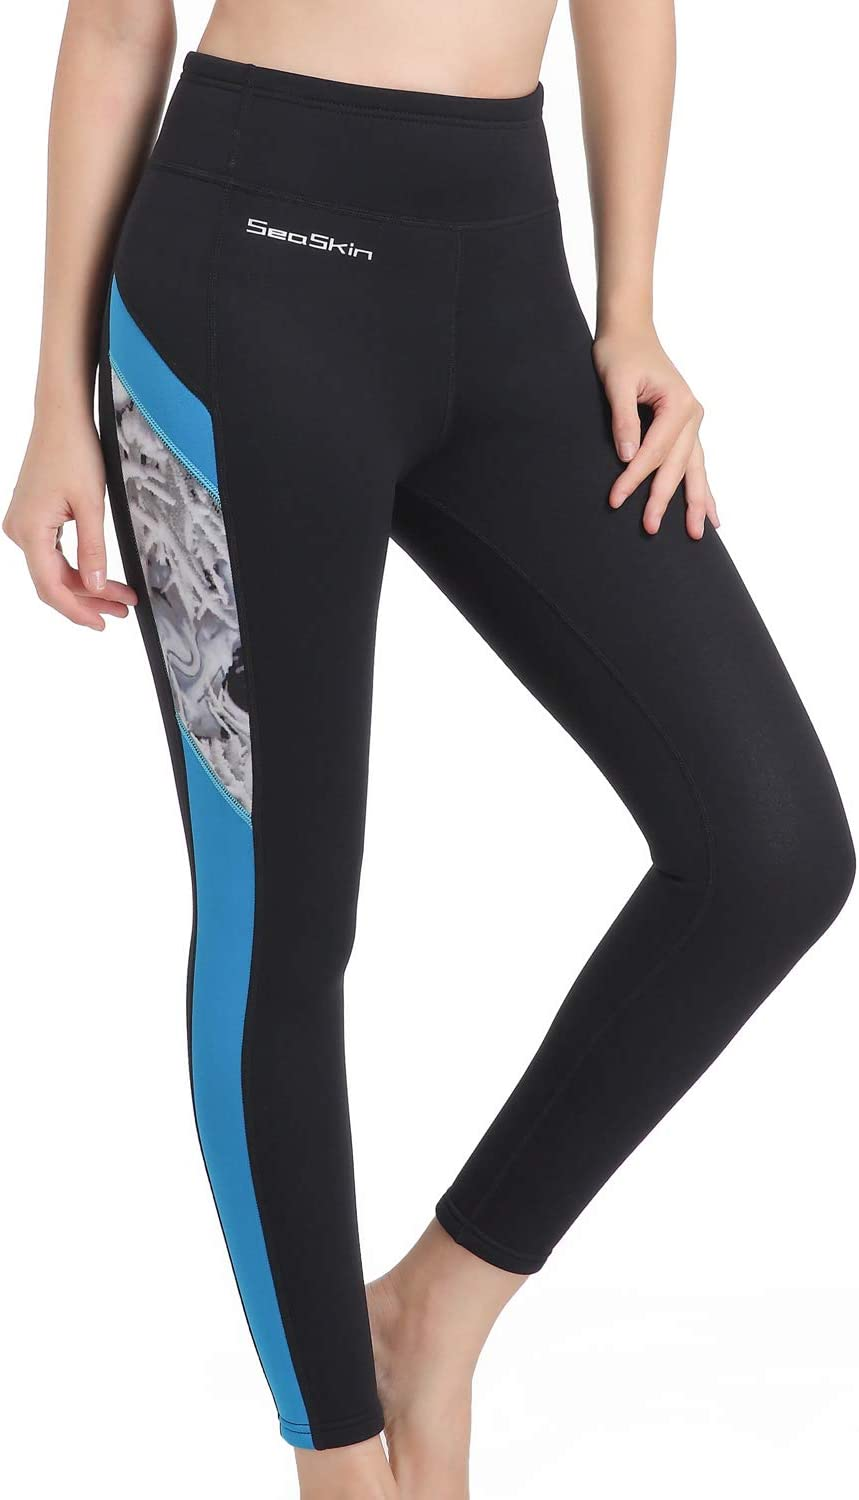 GoldFin Womens Wetsuit Pants 2mm Neoprene Pants Keep Warm for Swimming Surfing Kayaking Diving